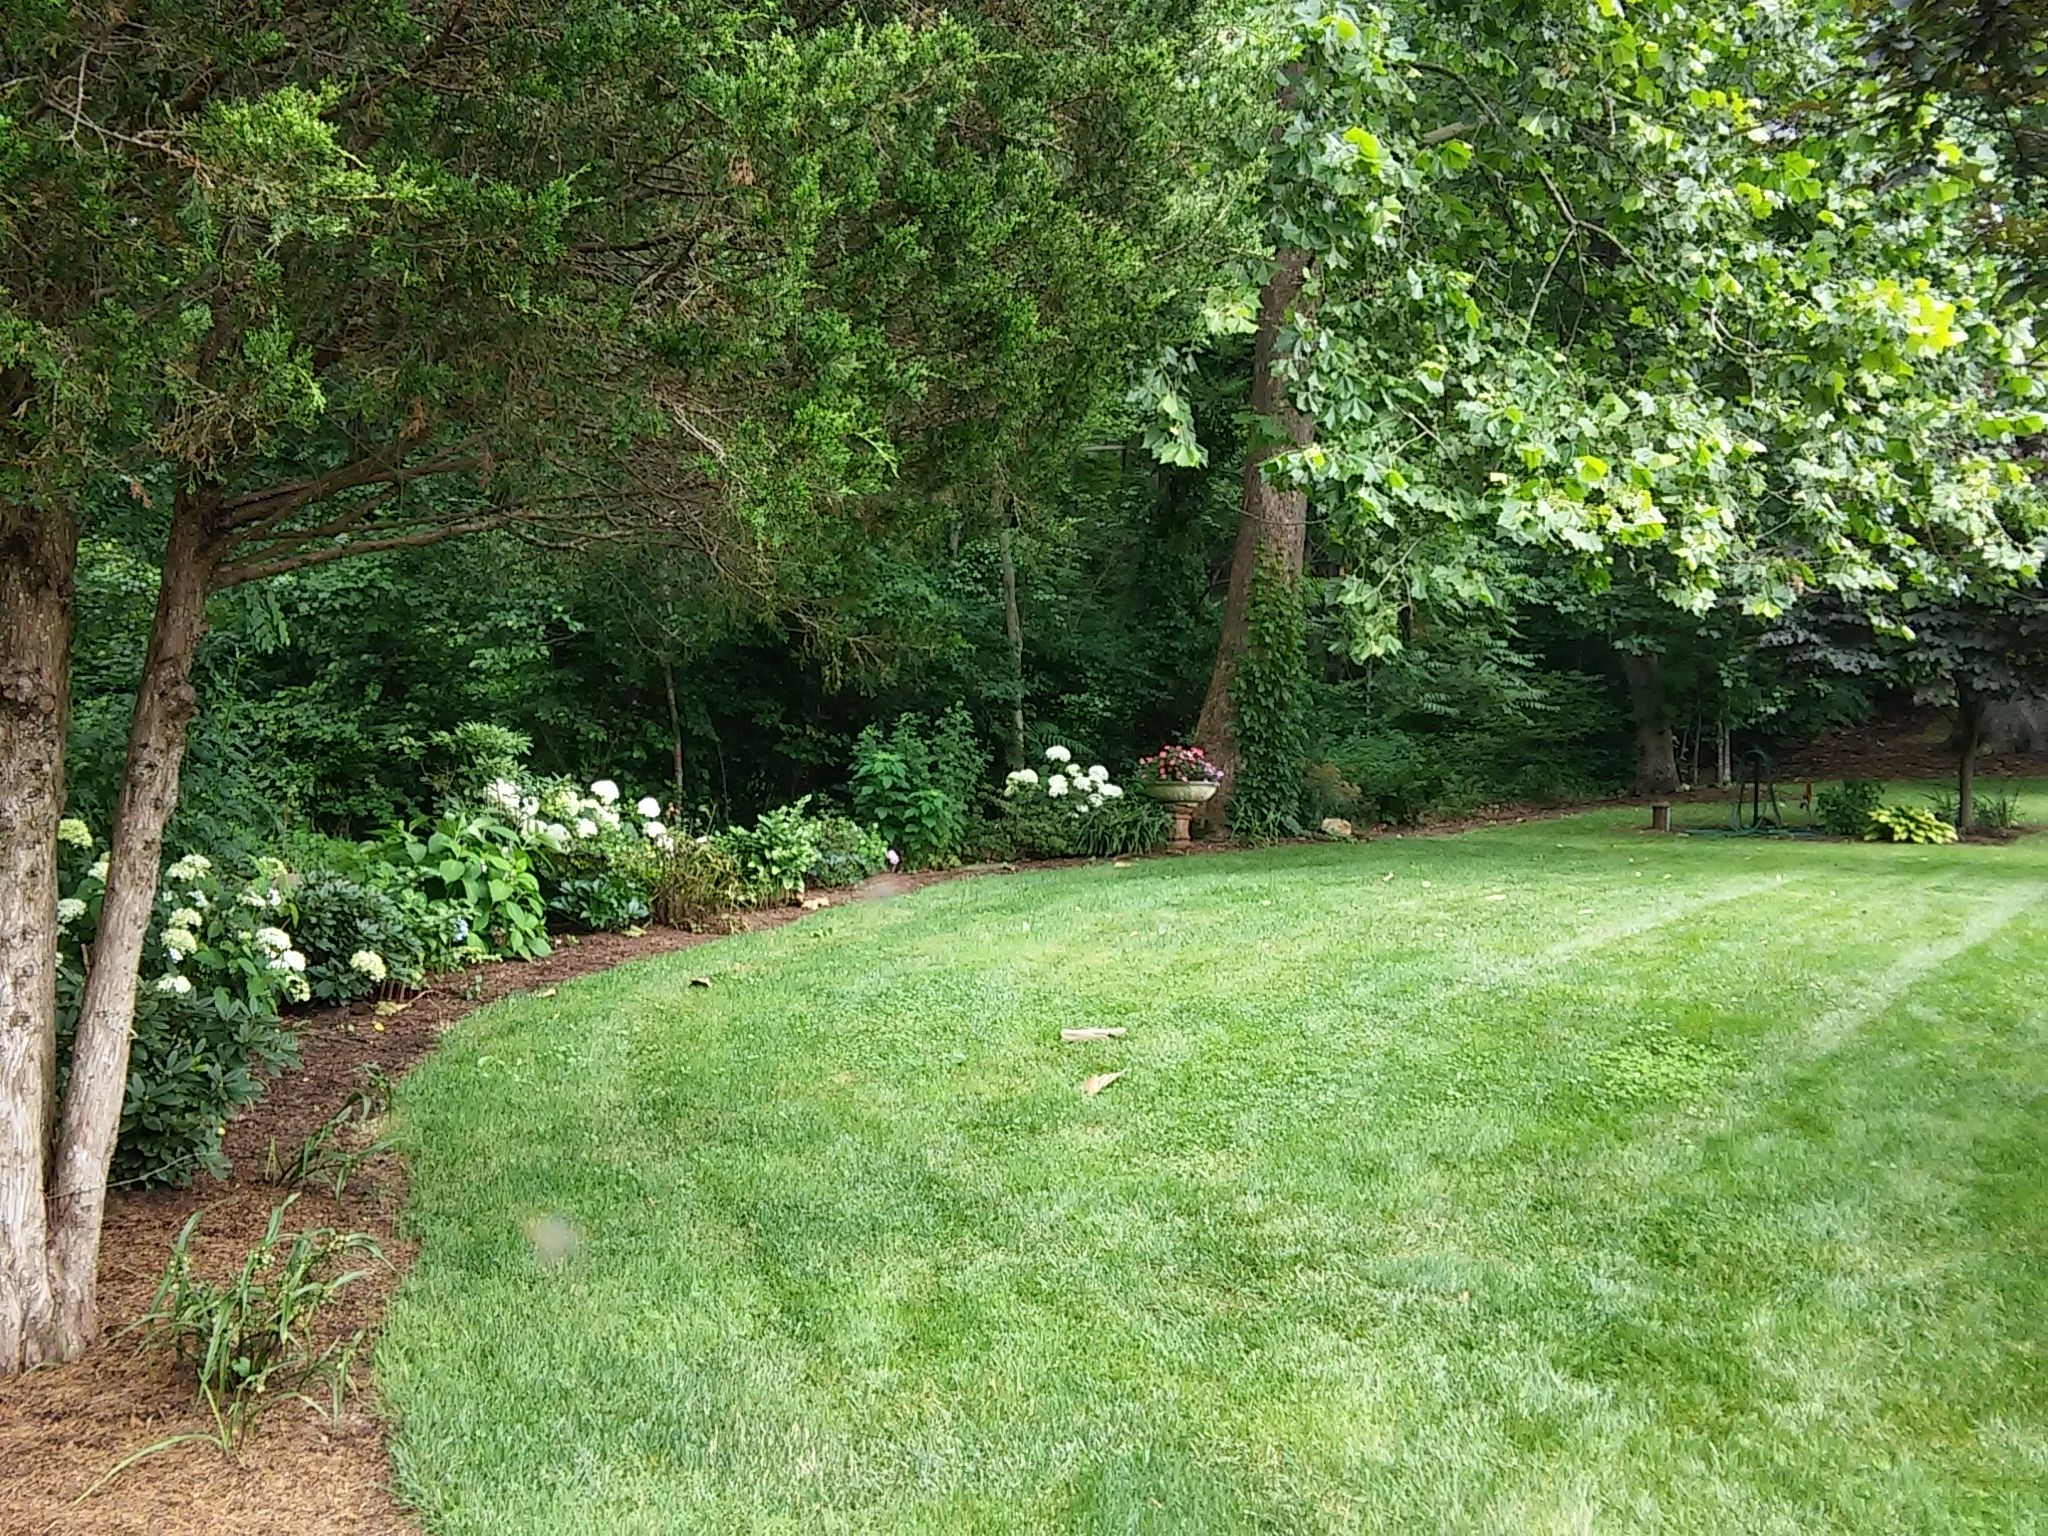 Sweeping side yard at Heartflame Garden.